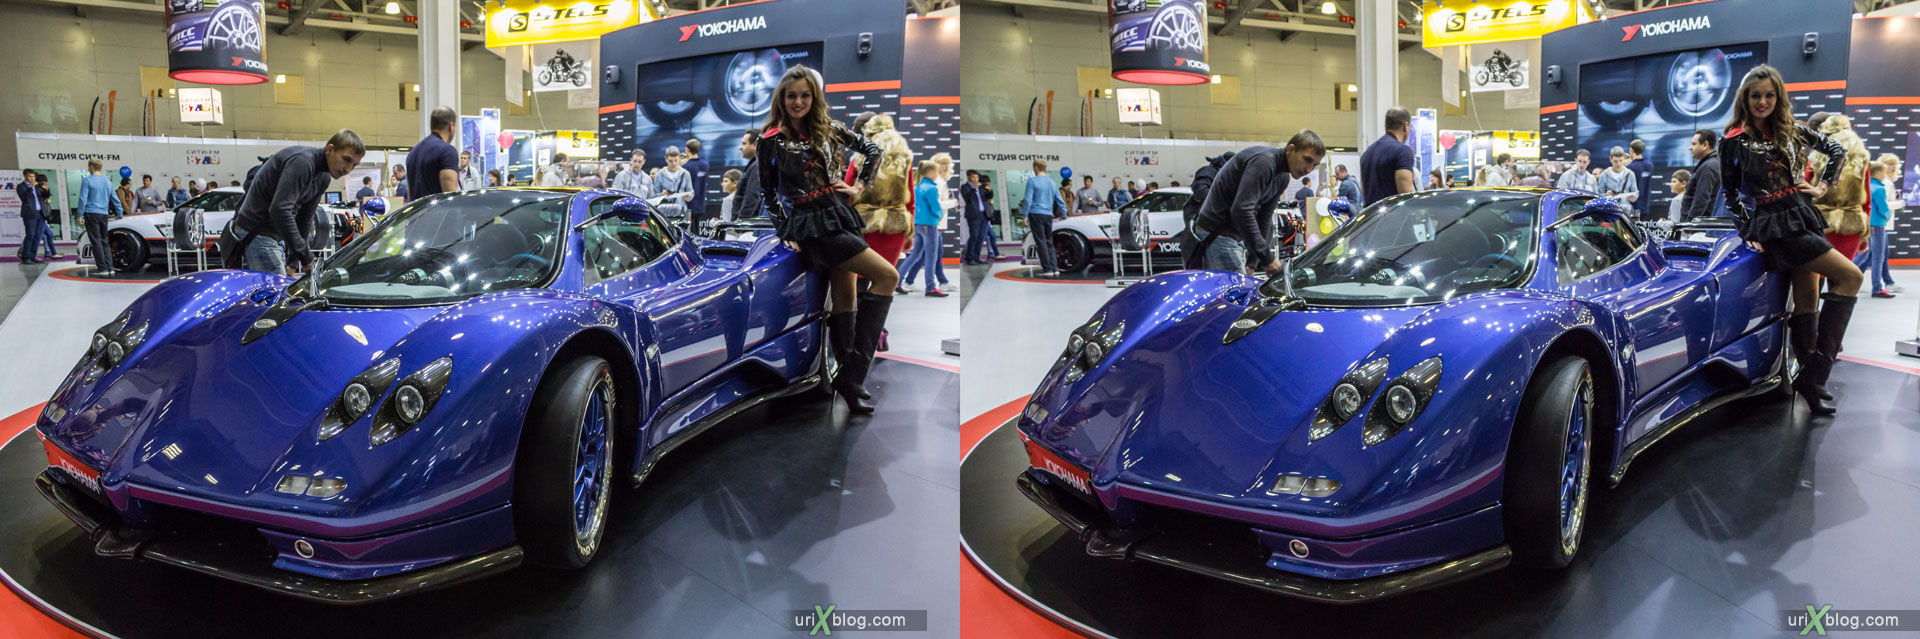 Pagani, Moscow International Automobile Salon 2014, MIAS 2014, girls, models, Crocus Expo, Moscow, Russia, 3D, stereo pair, cross-eyed, crossview, cross view stereo pair, stereoscopic, 2014